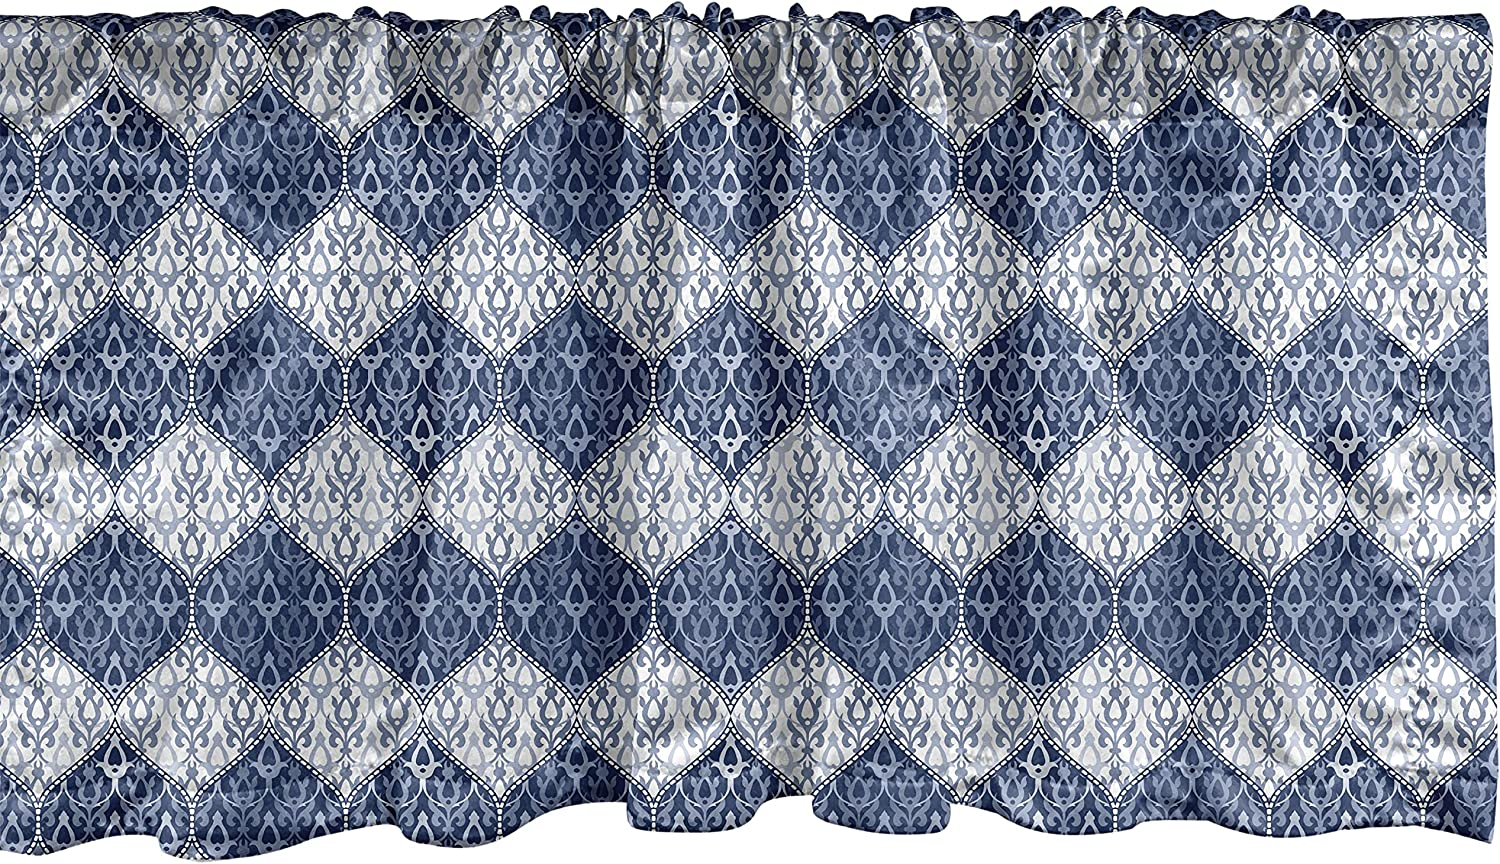 Ambesonne Navy Blue Window Valance, Oriental Pattern in Patchwork Horizontal Design Eastern Asian, Curtain Valance for Kitchen Bedroom Decor with Rod Pocket, 54